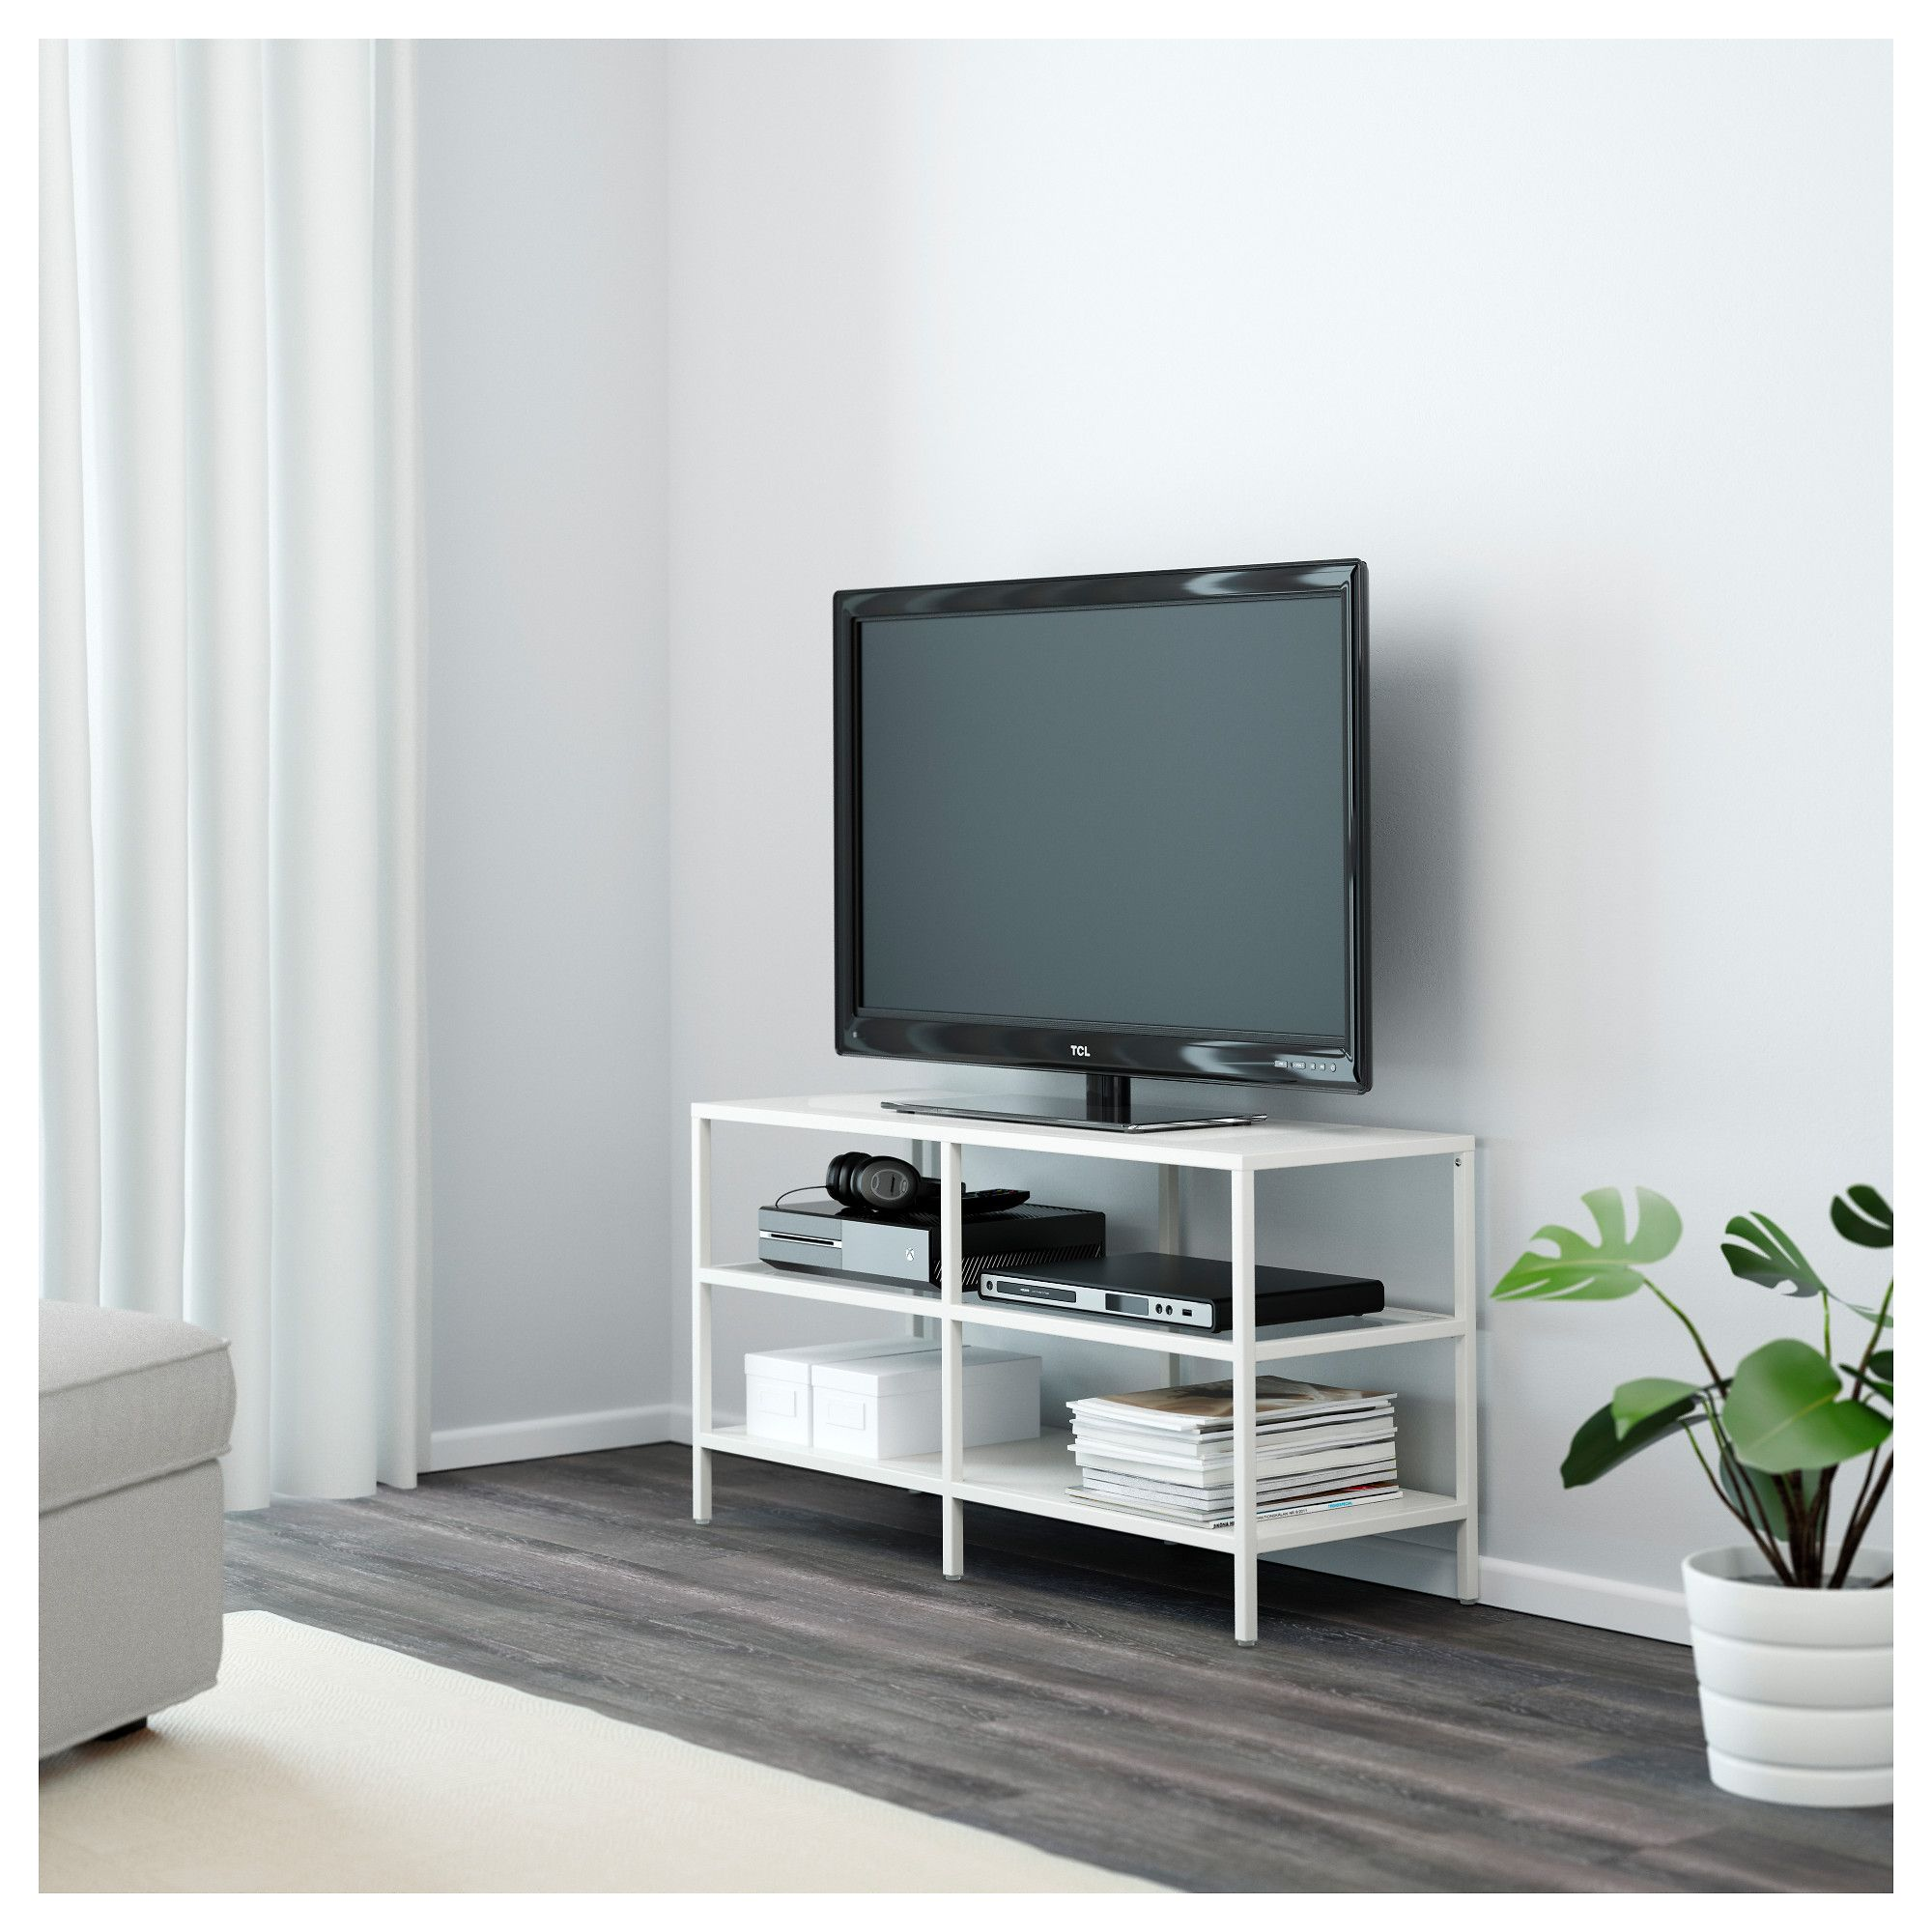 Vittsj Tv Bench White Glass Tv Bench Bench And Tvs # Commode Television Ikea